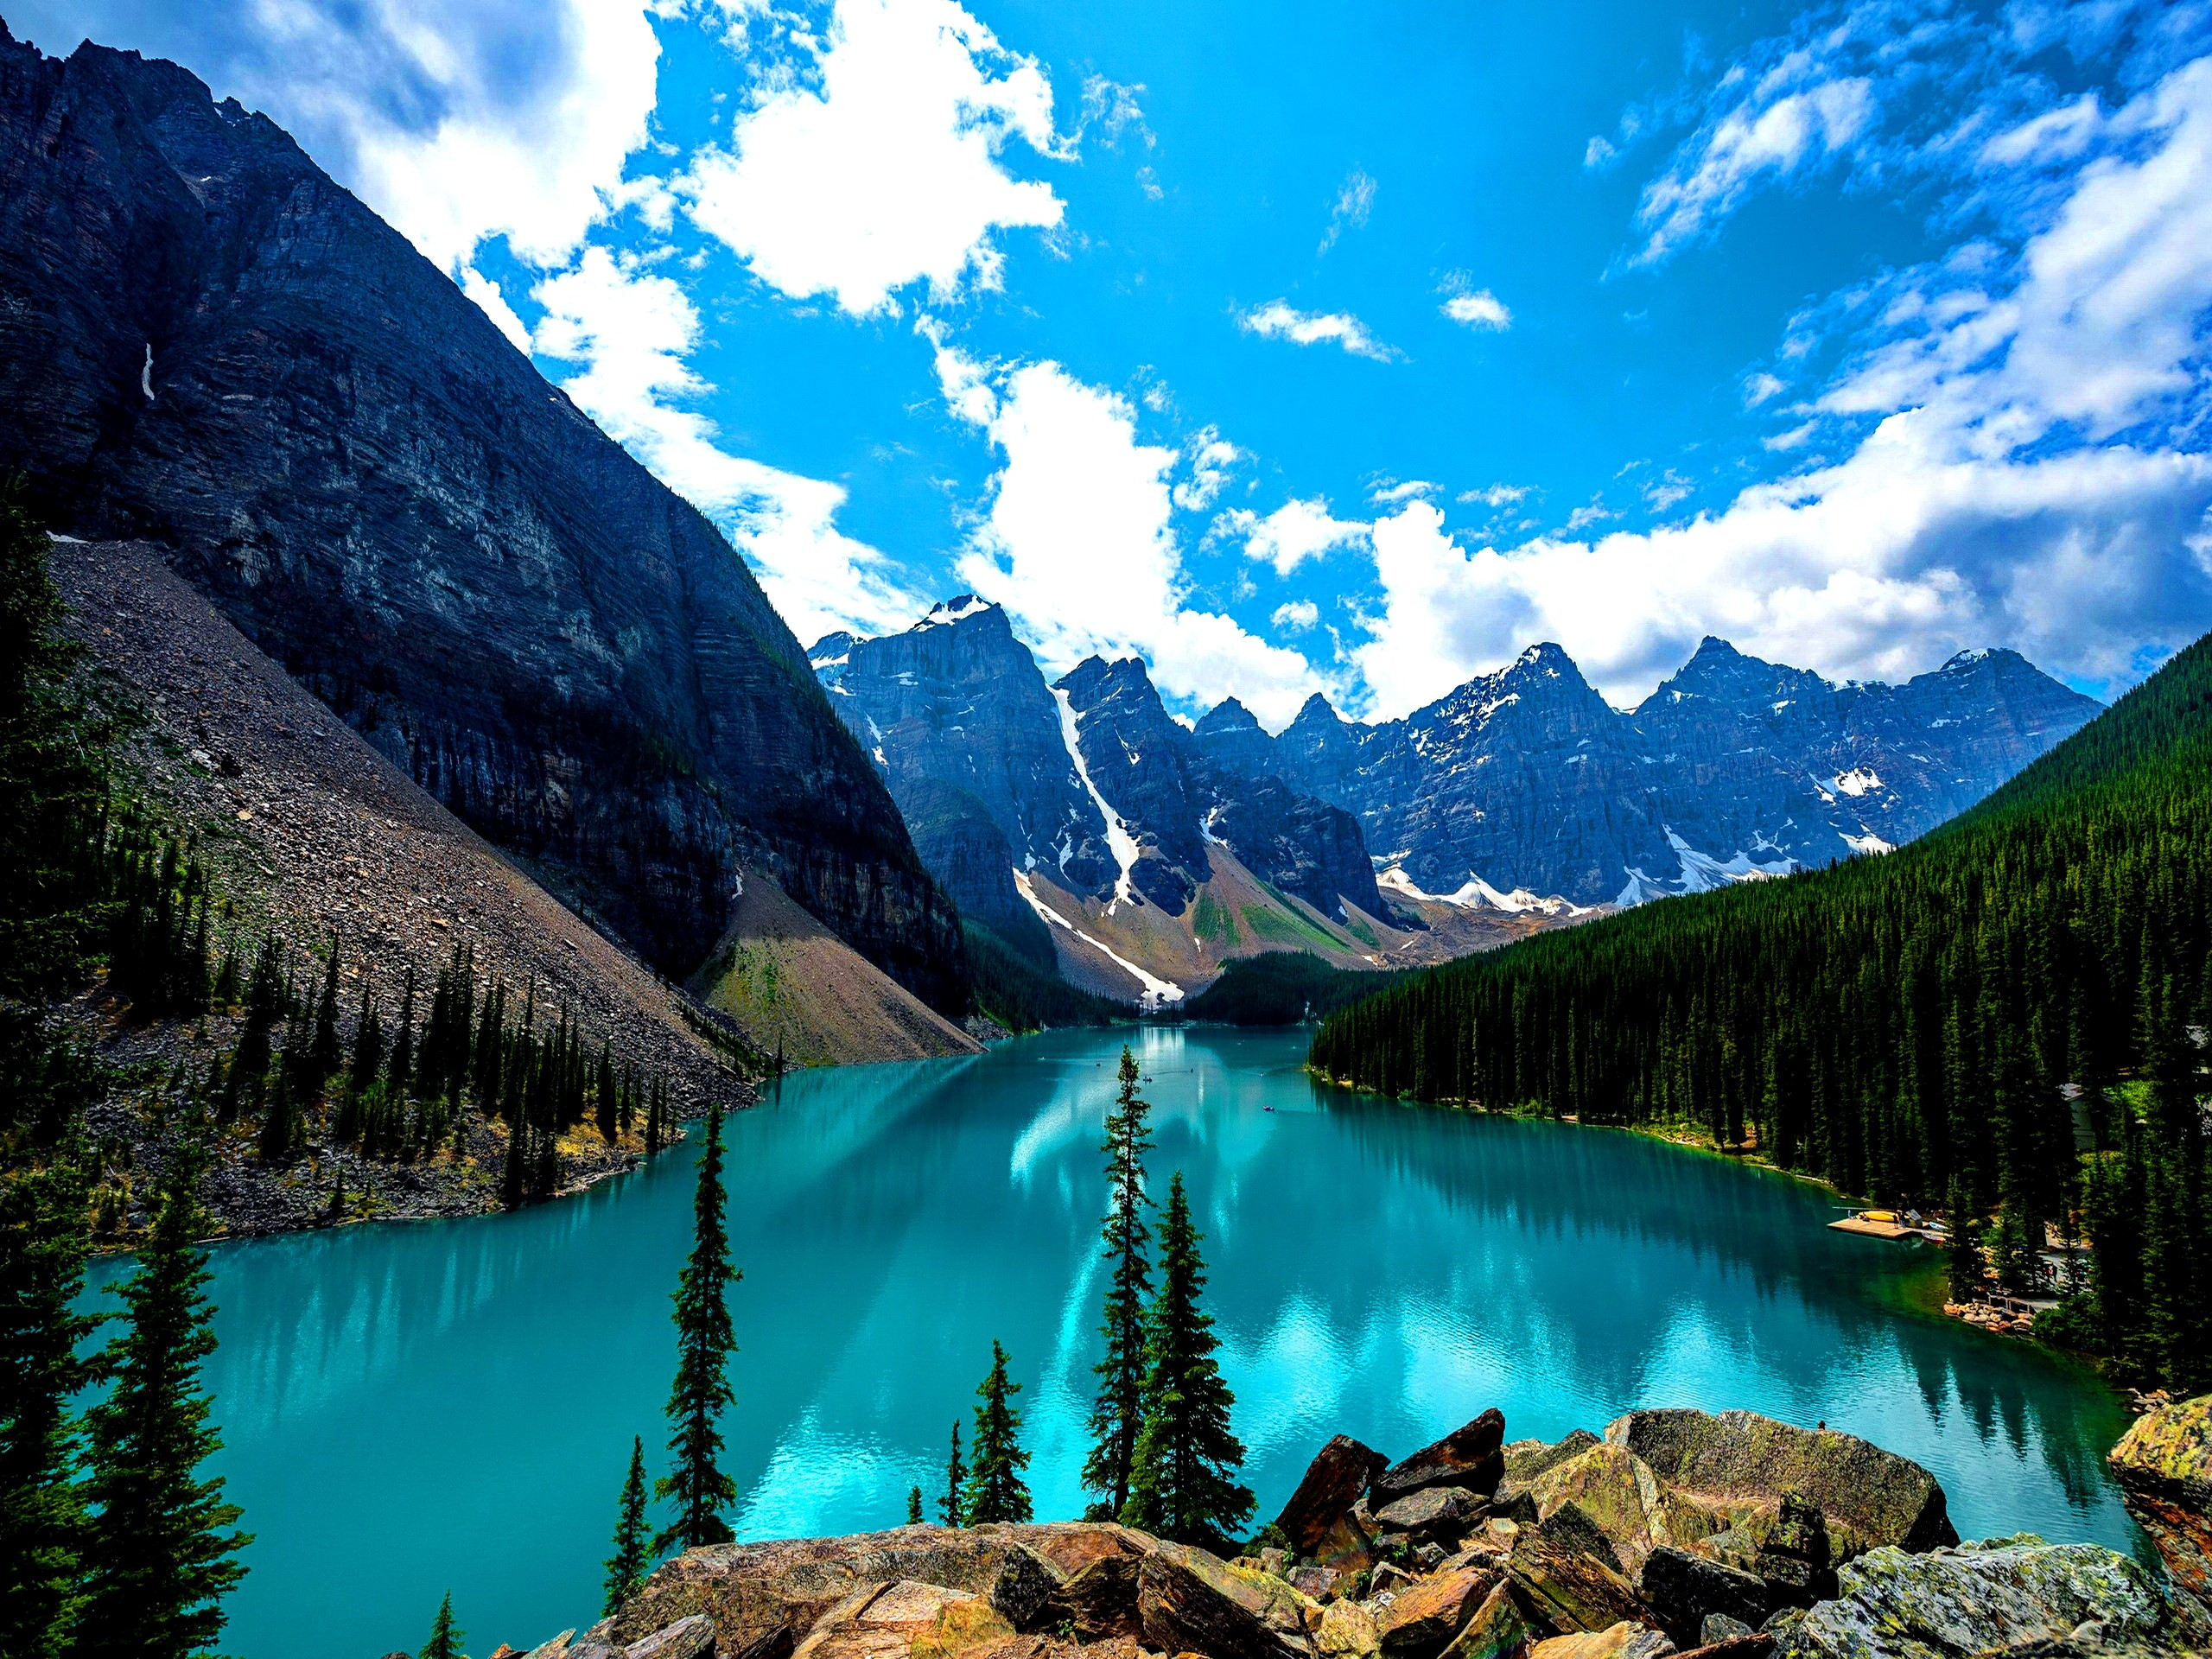 Moraine lake canada wallpaper 2731 pc for Wallpaper canada